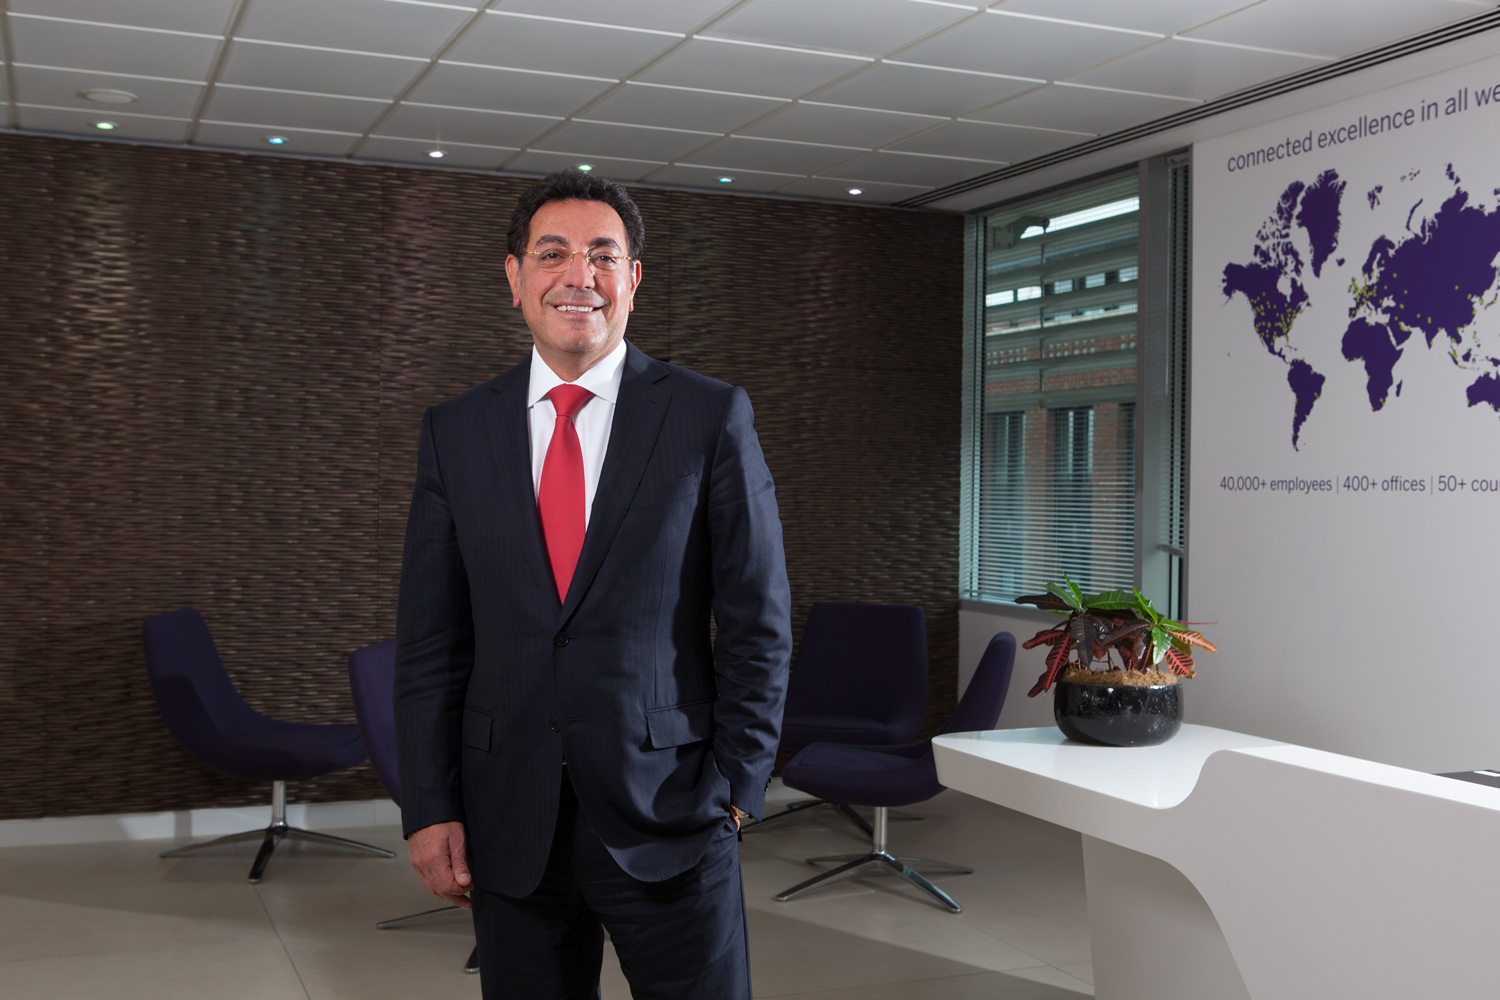 CEO photography by David Woolfall